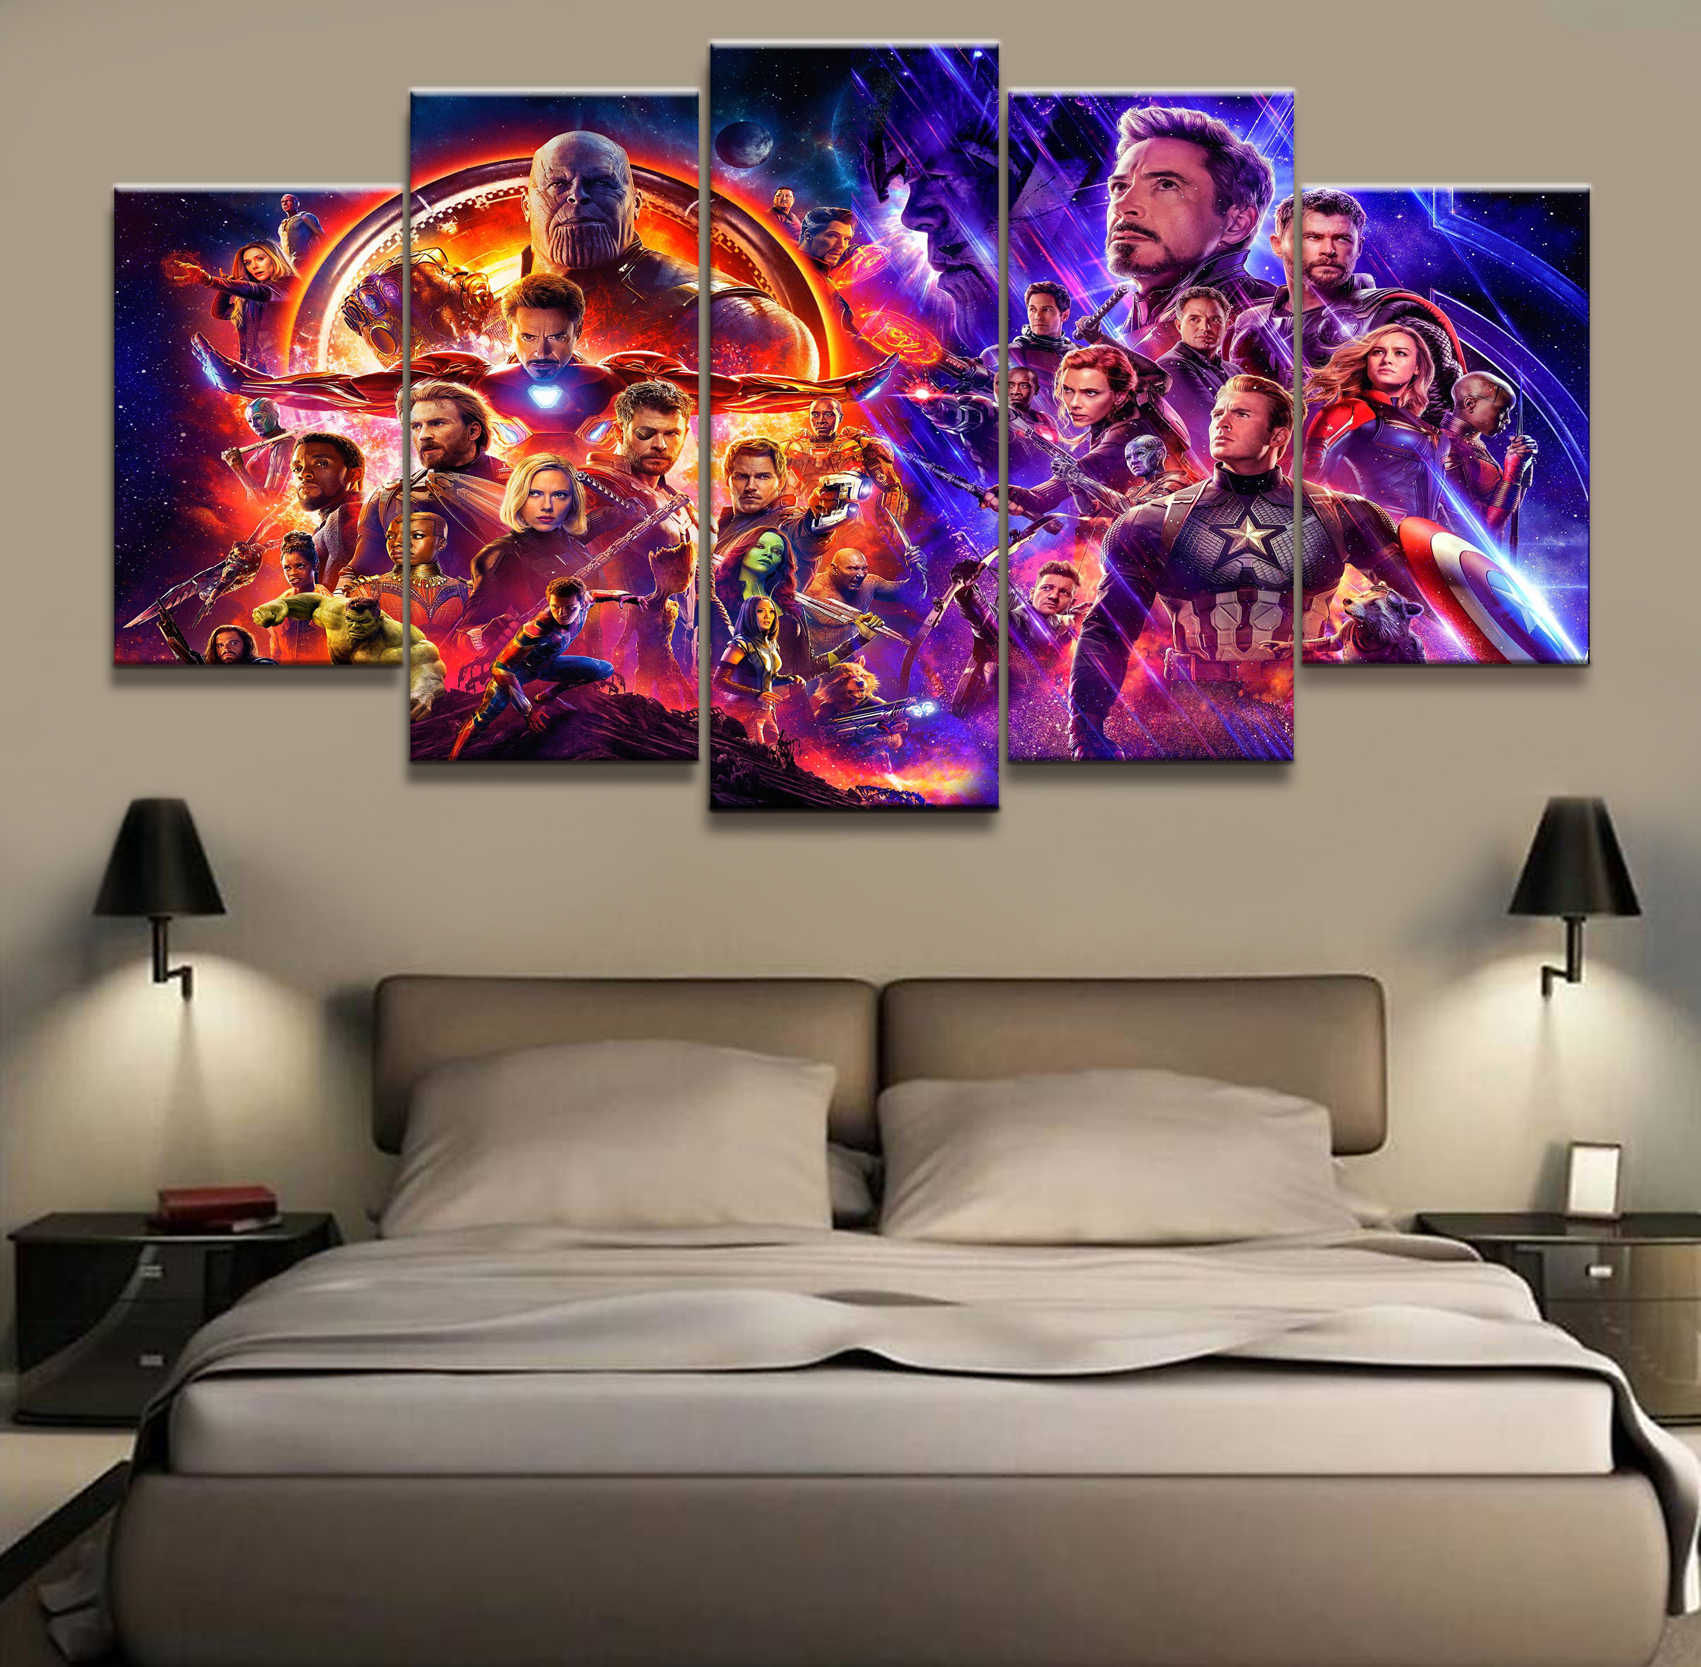 5 Piece Captain America Iron Man Avengers Endgame Films Art Posters Footprints Painting Wall Decoration for Living Room Poster